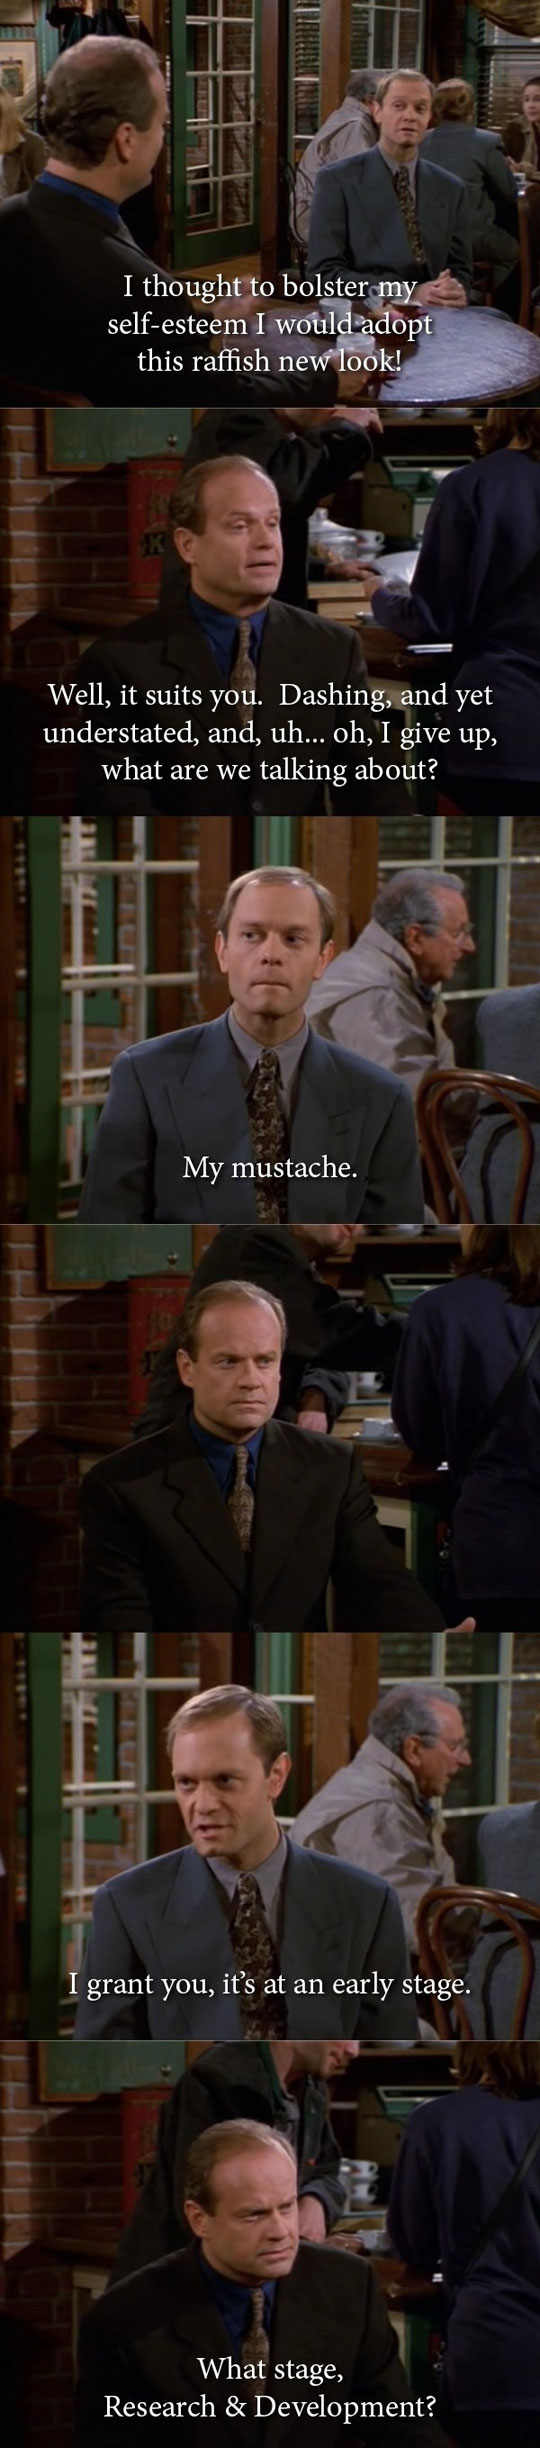 Whenever I Try To Grow Facial Hair